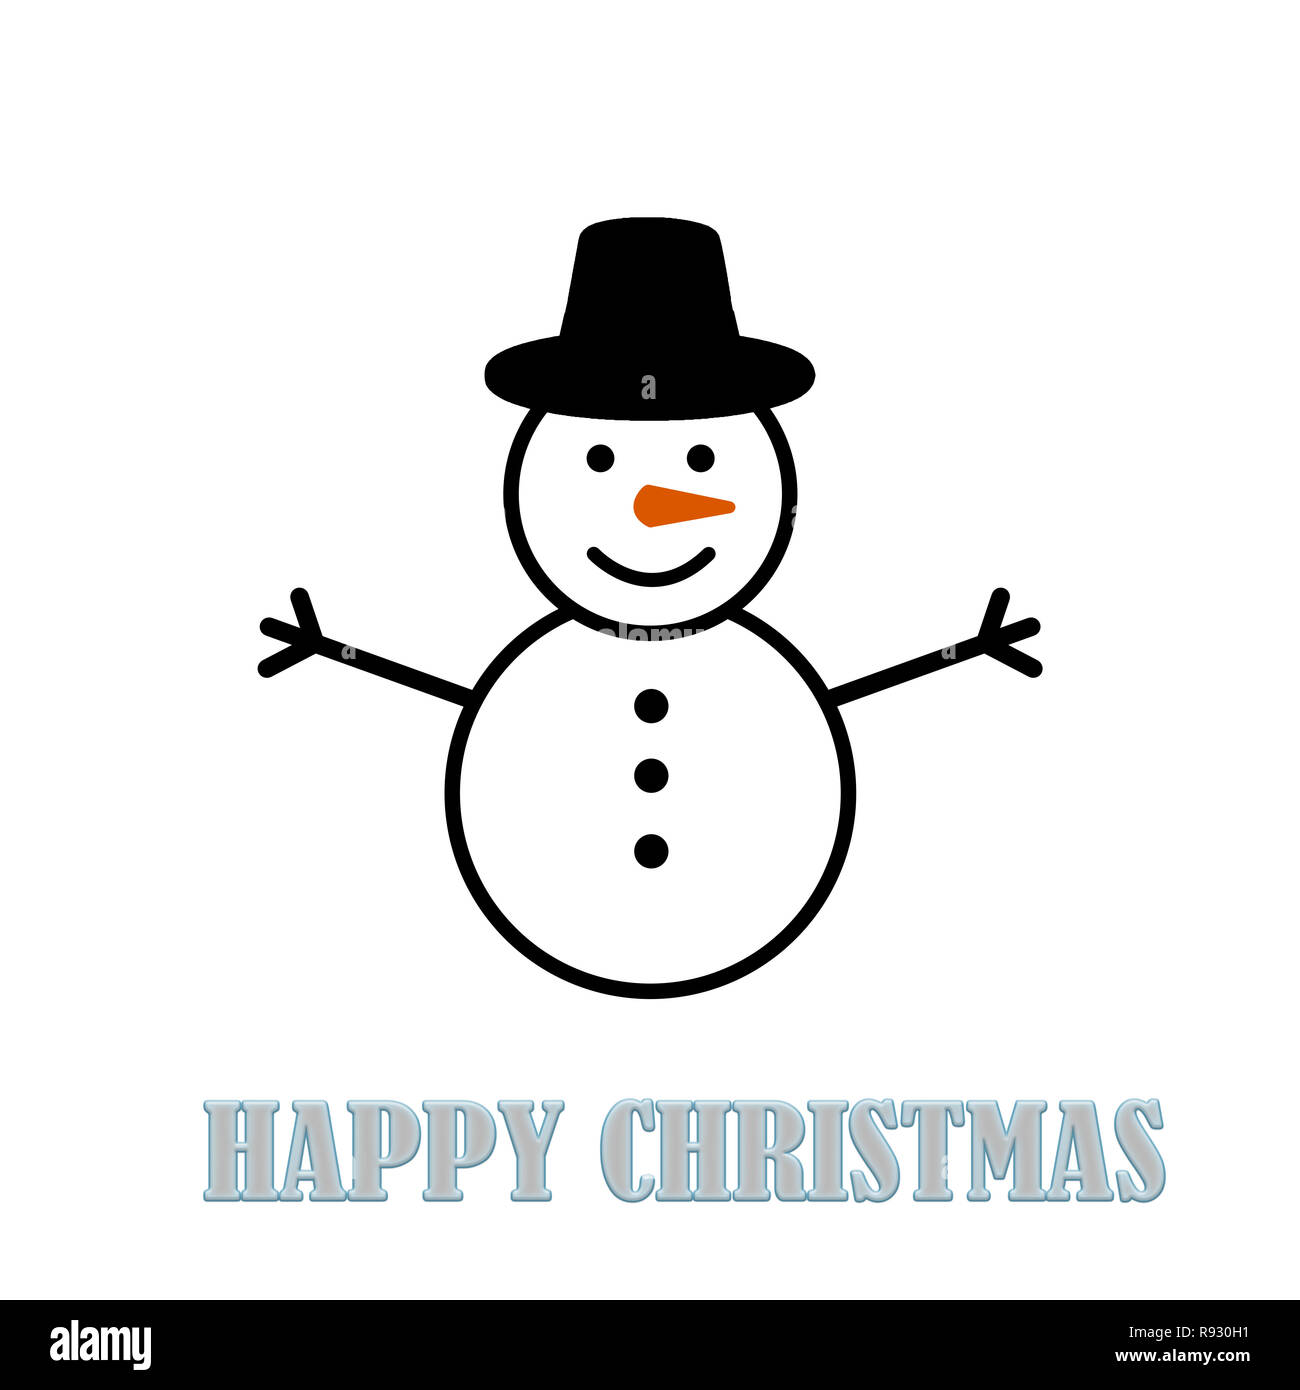 00382303c2951 Snowman wearing flat cap on a white background. Happy Christmas ...